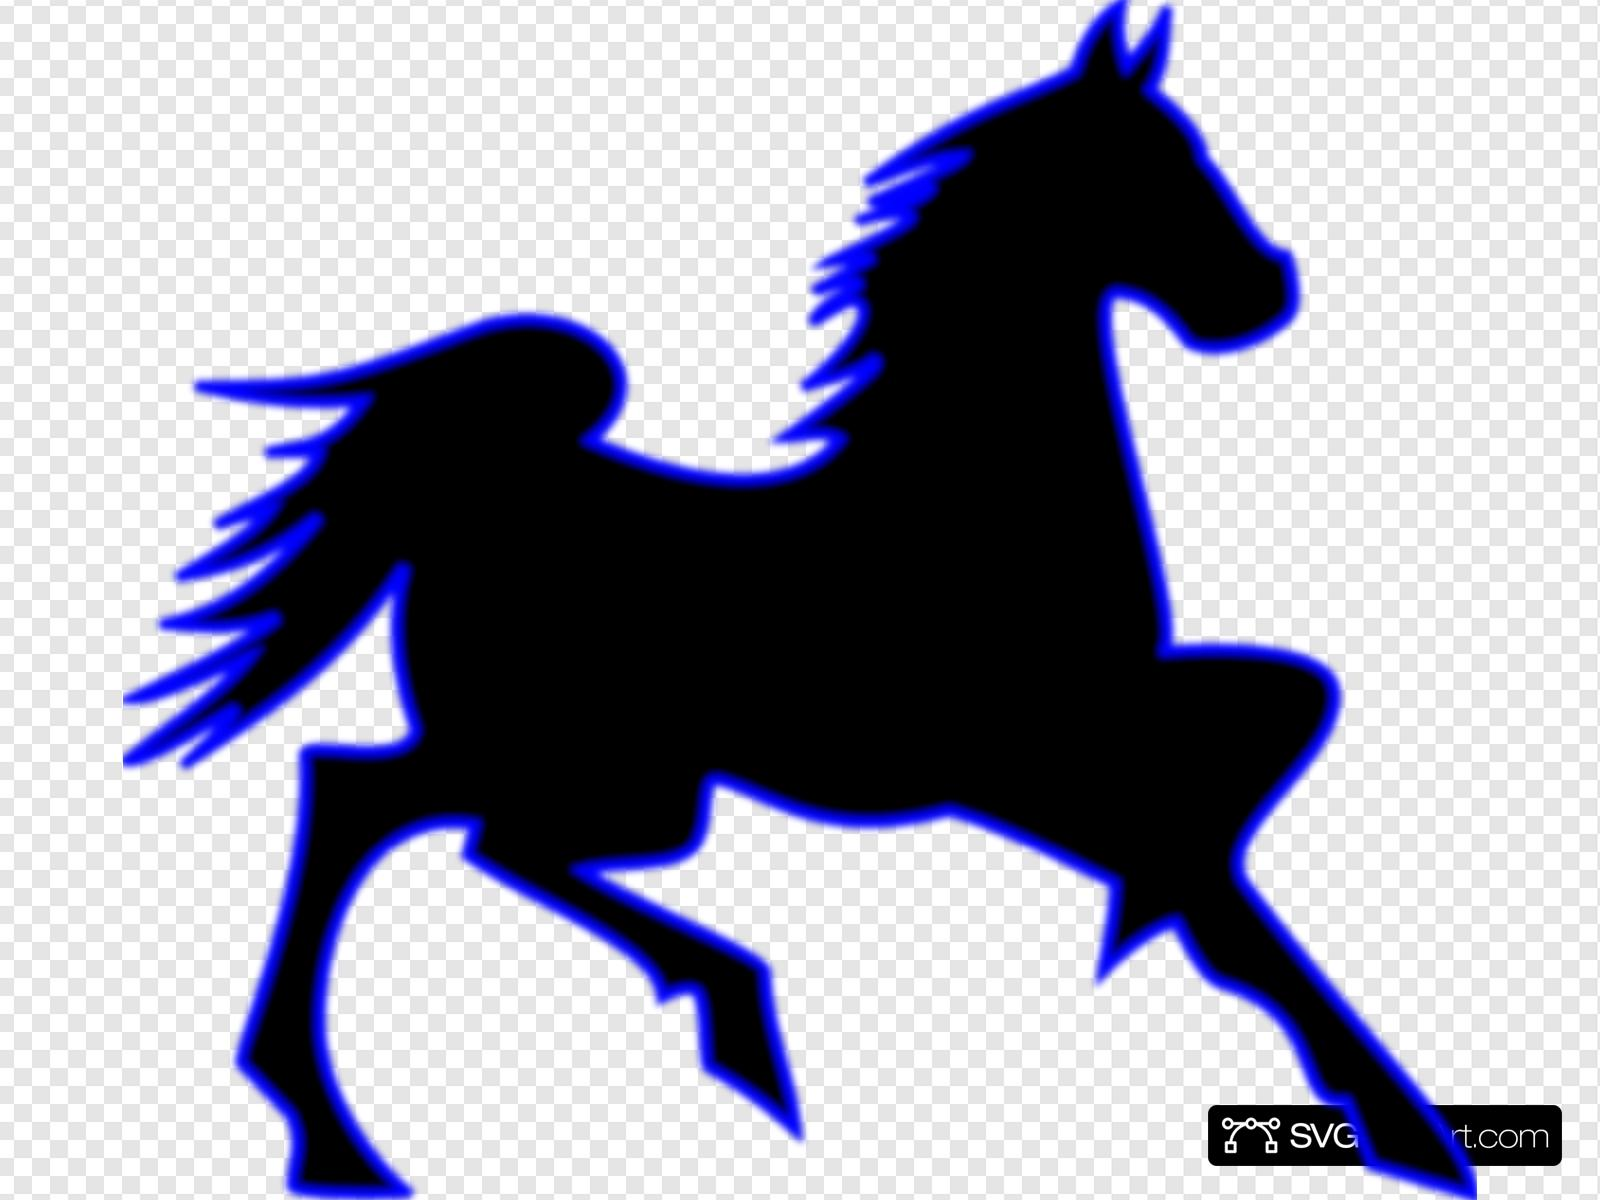 Blue Horse Clip art, Icon and SVG.